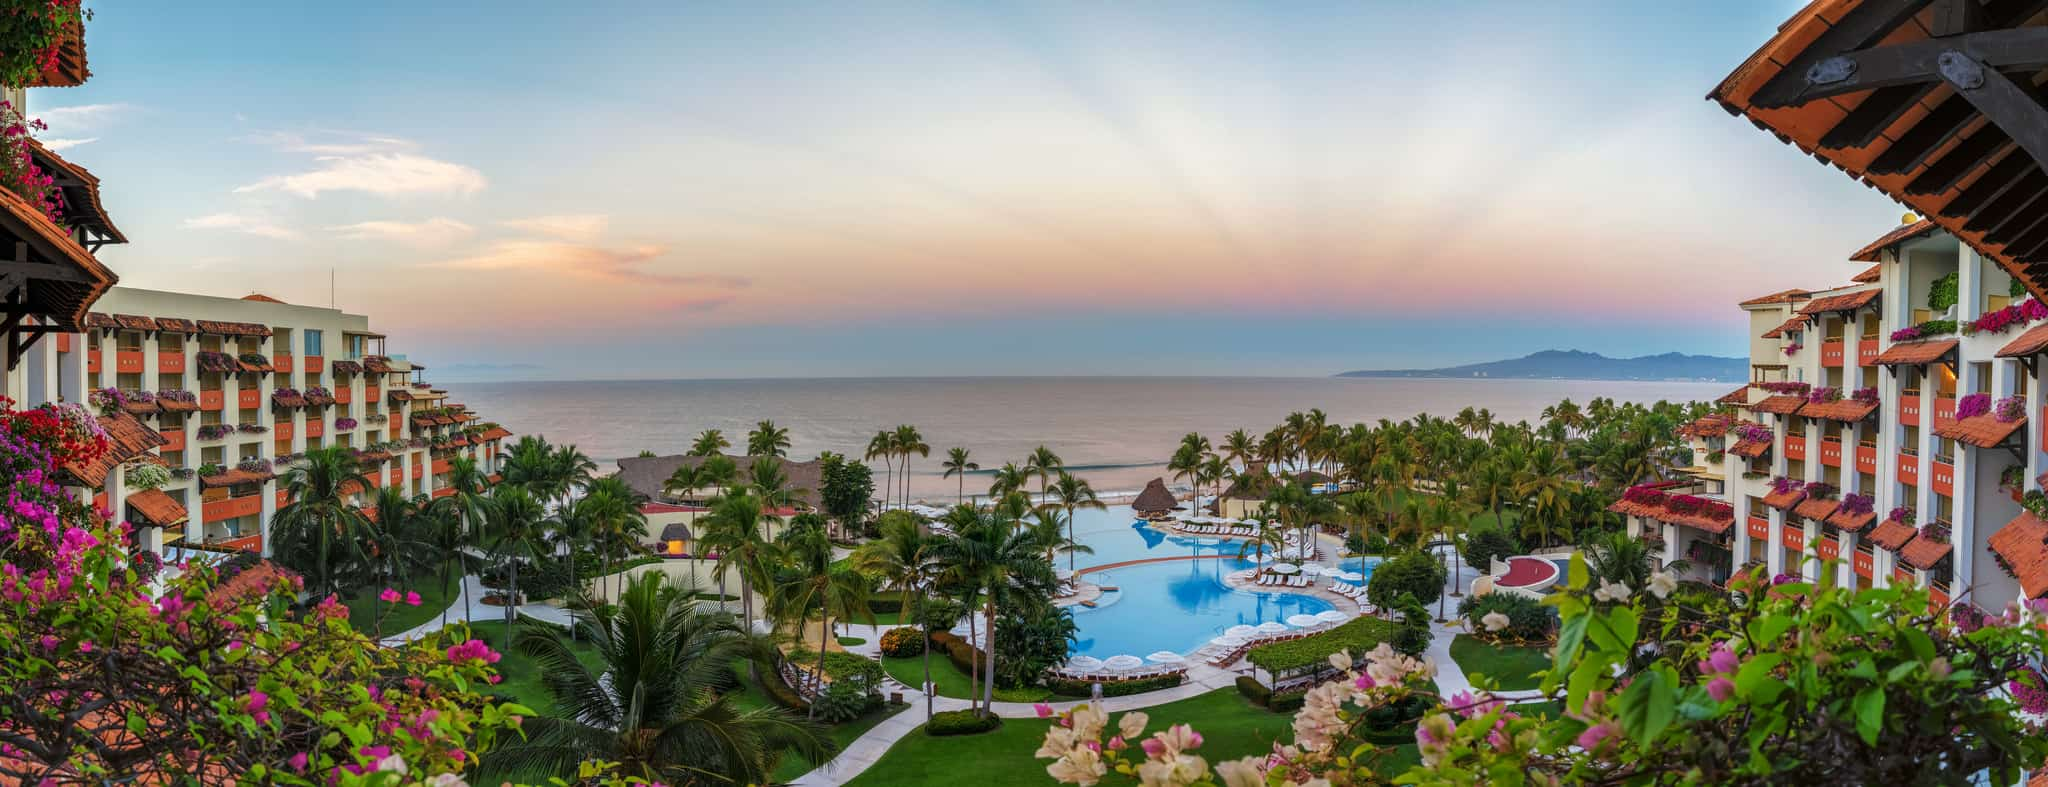 Puerto Vallarta / Cheapest Places To Travel